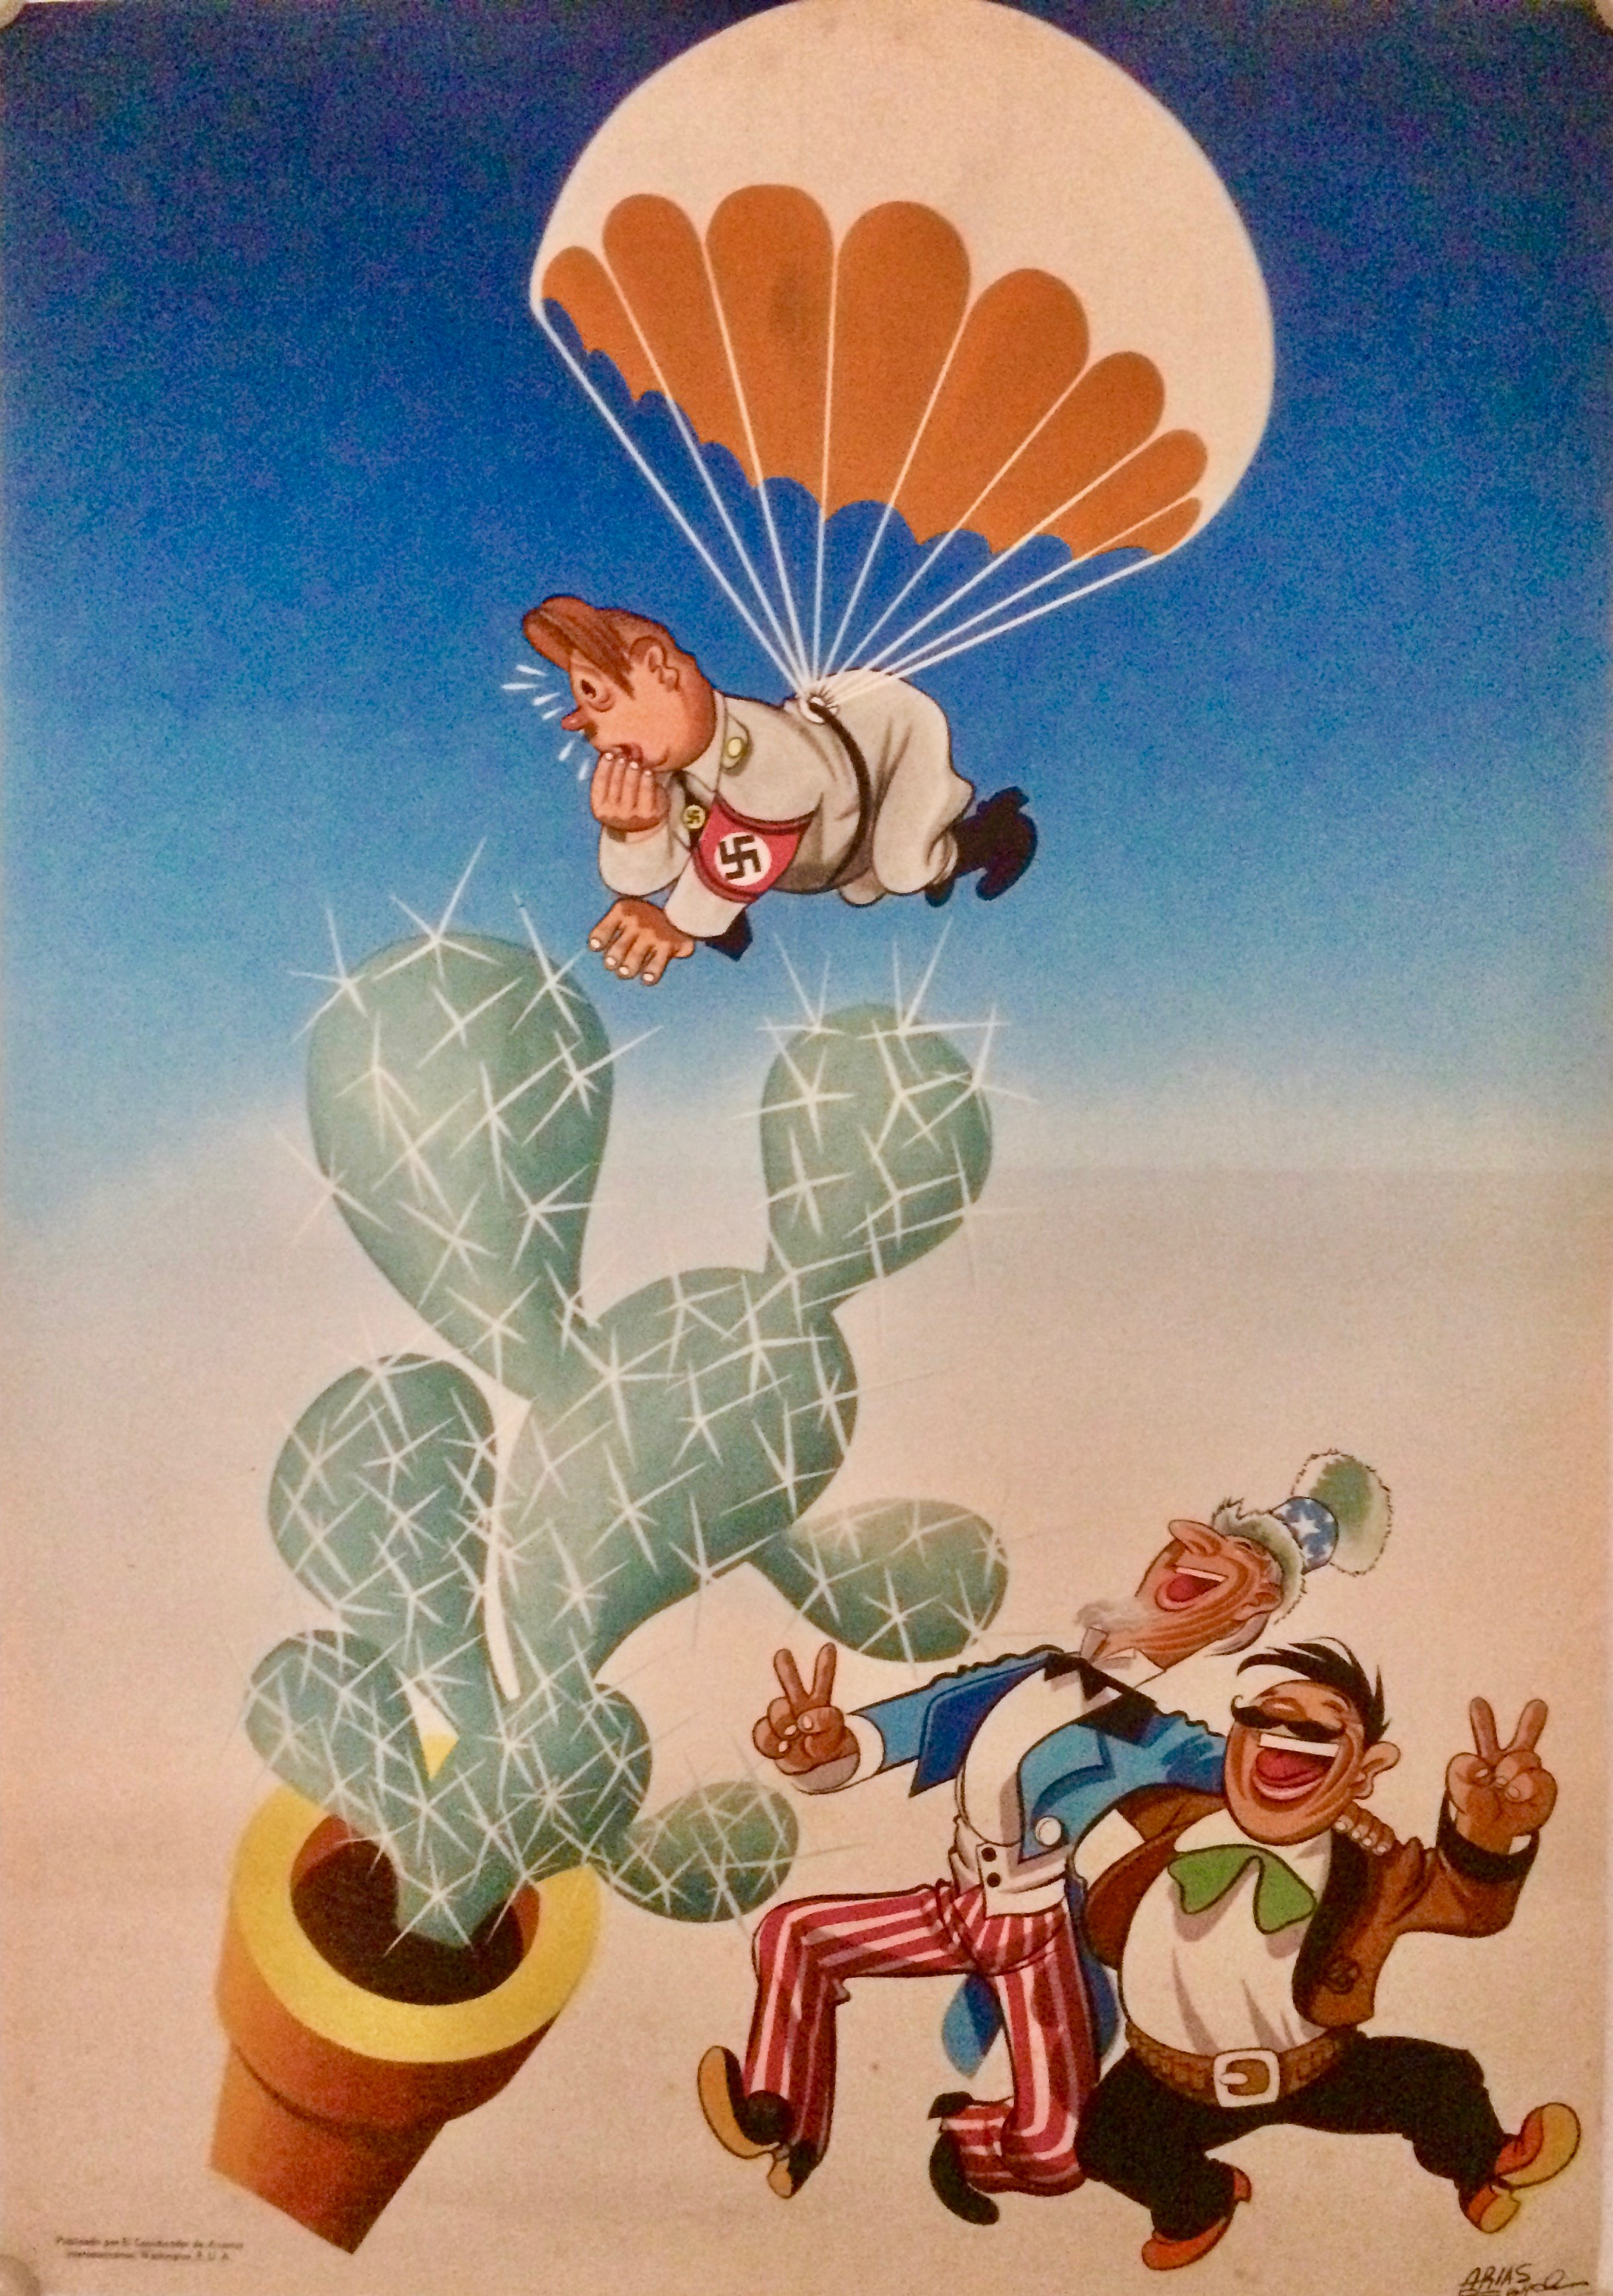 Nazi parachuting into a cactus watched by Uncle Sam & Mexican